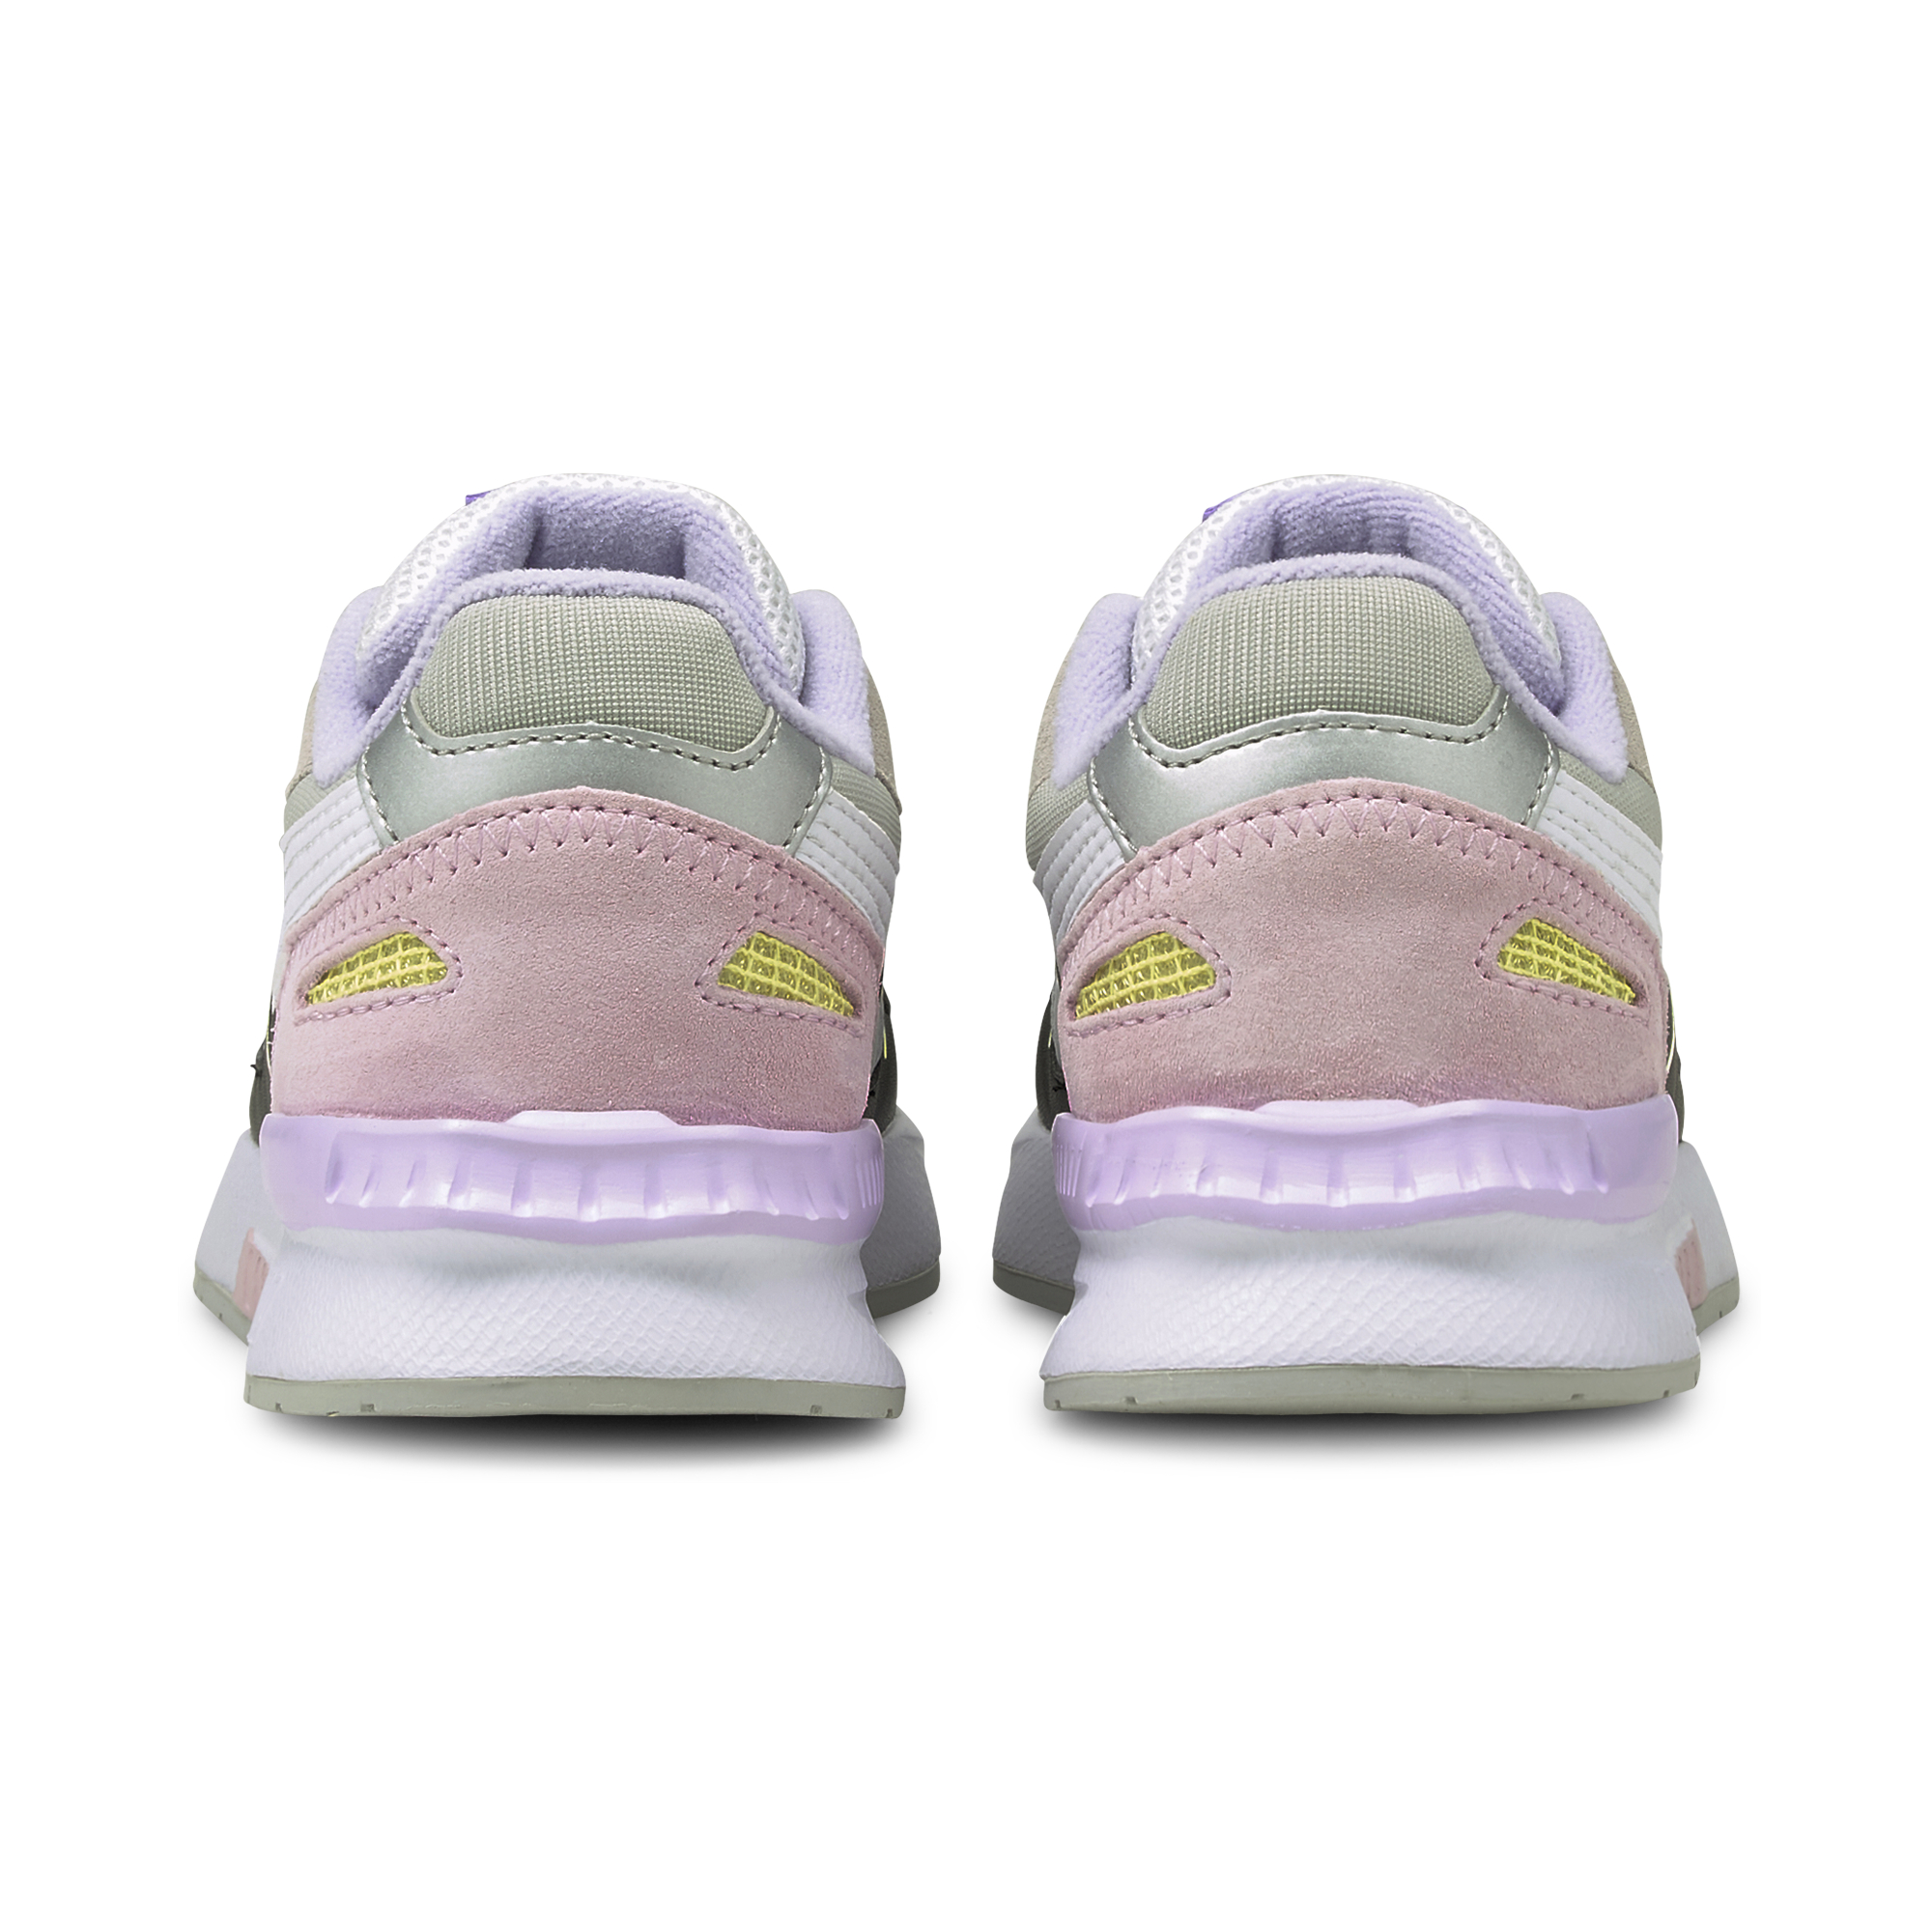 Puma Mirage Mox Vision PS sneakers, white-pink lady, 29